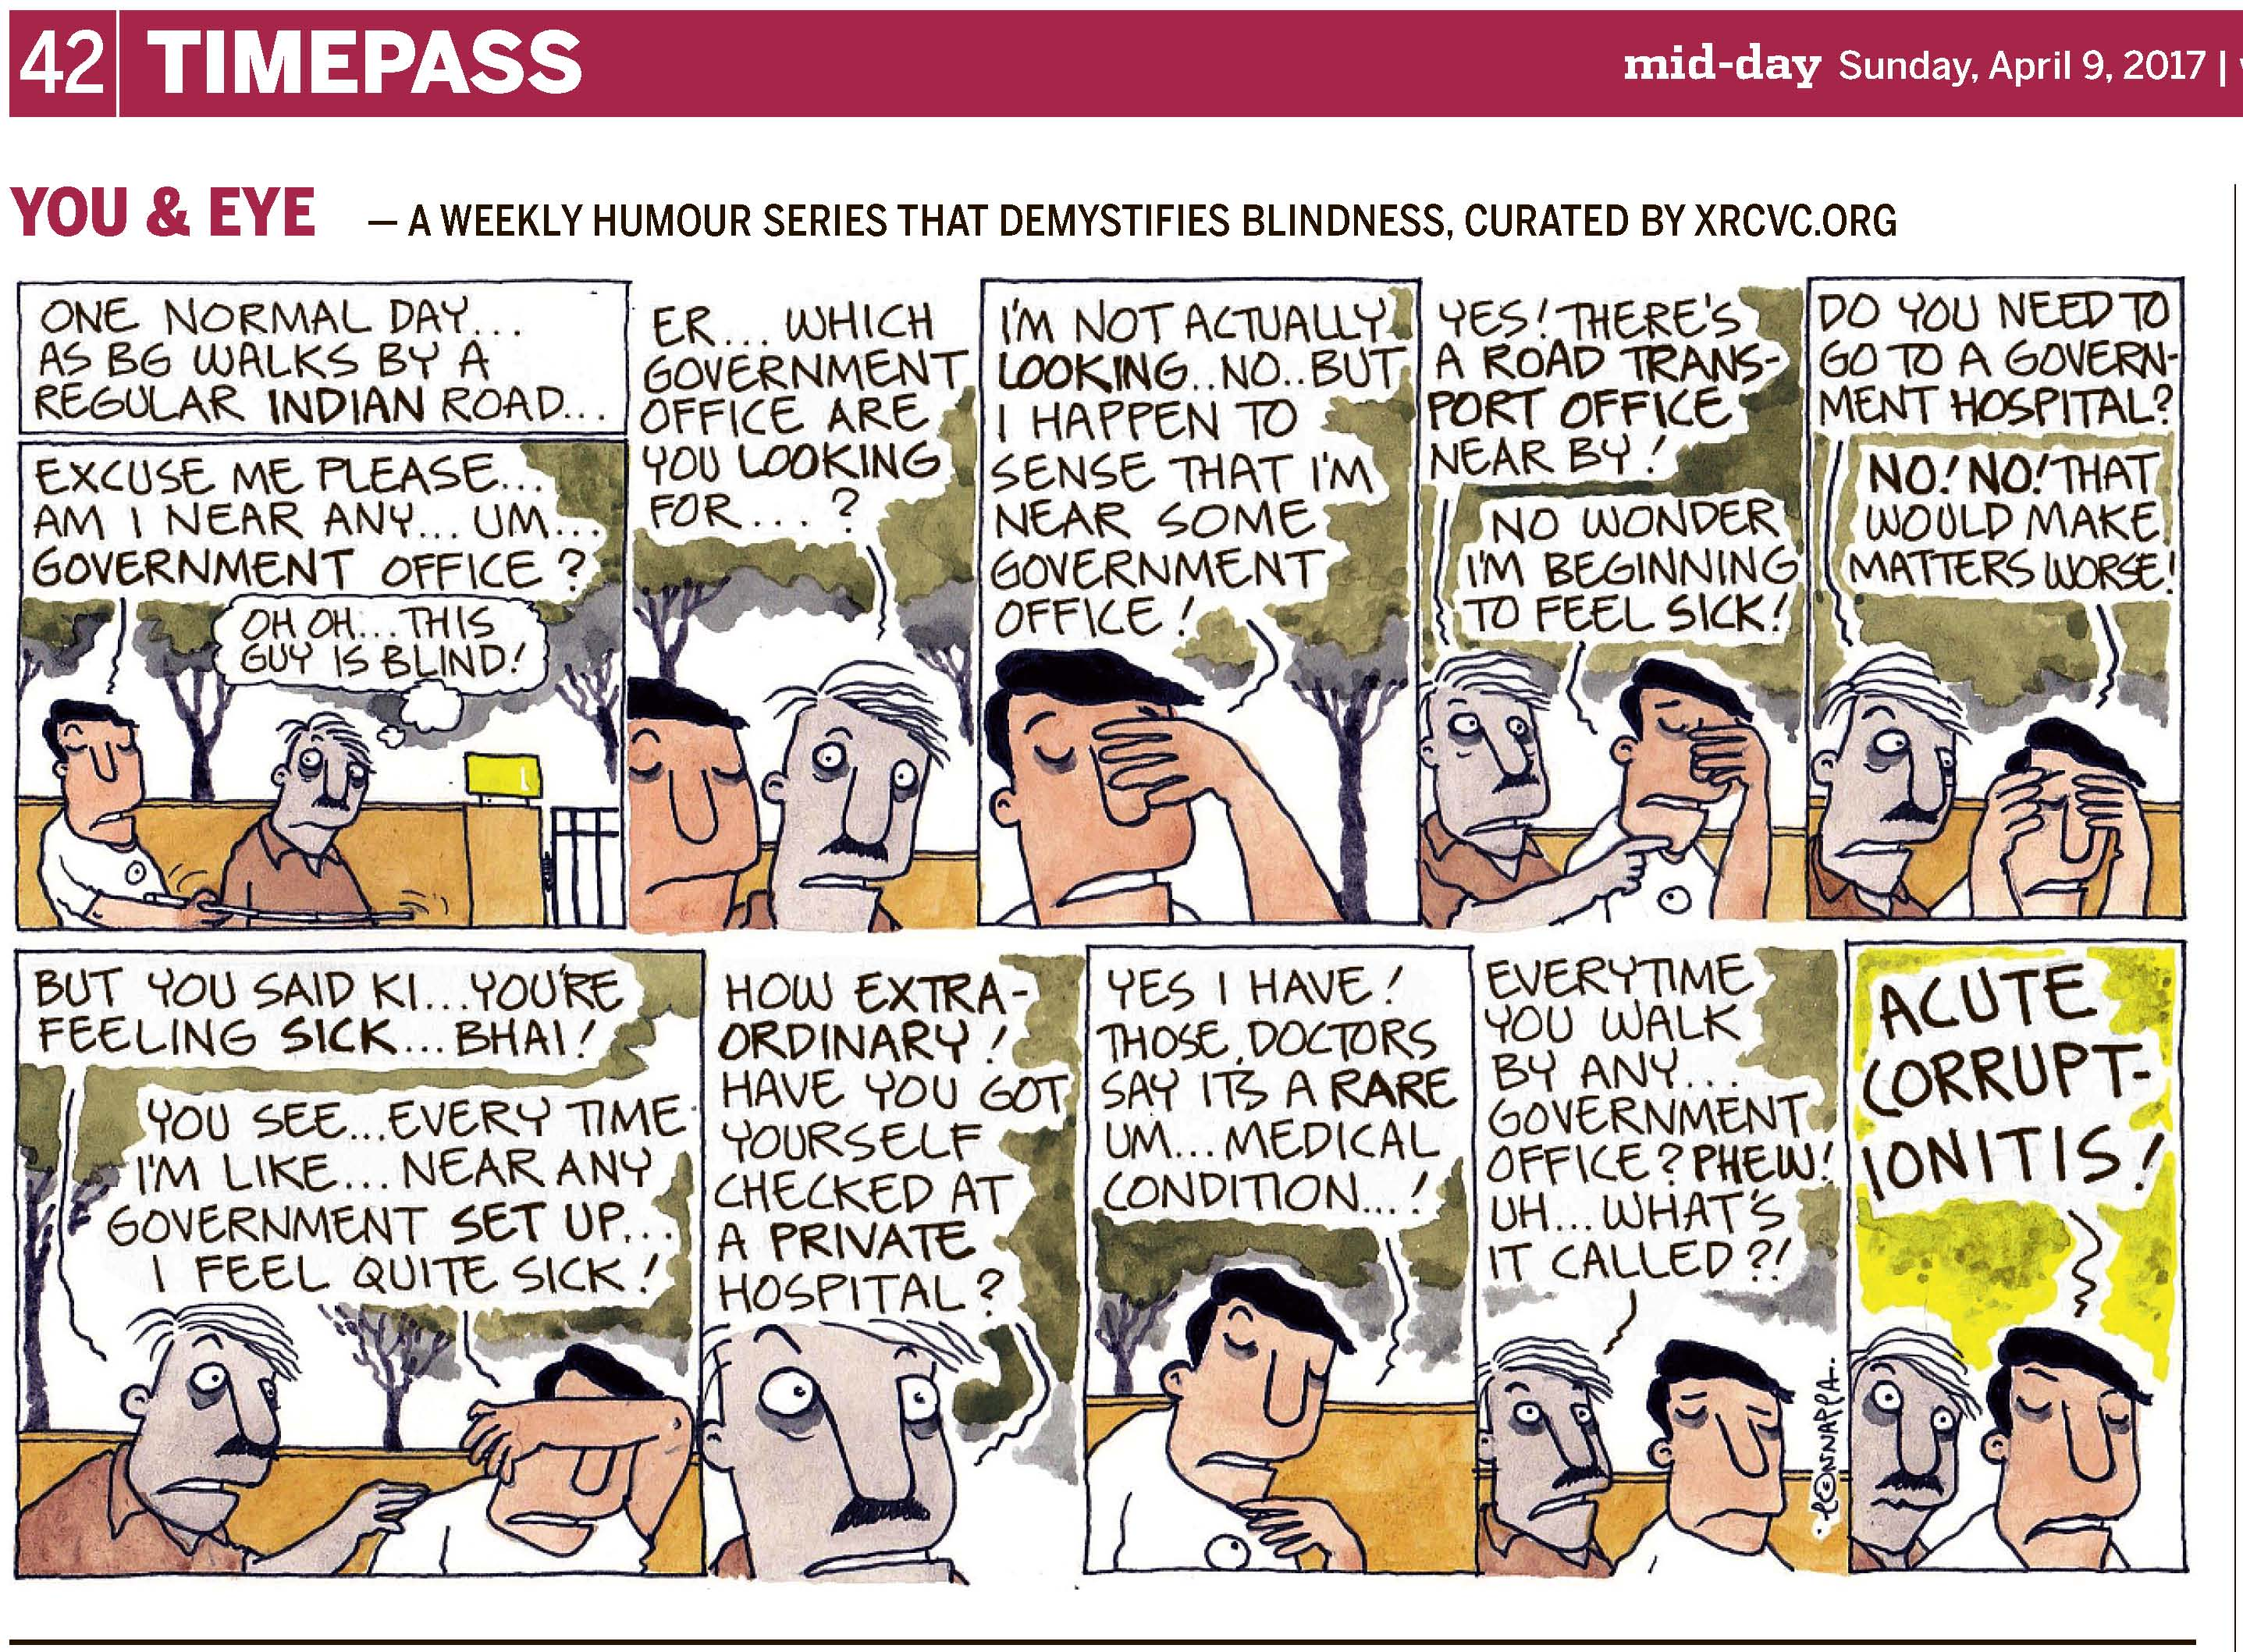 (top-left) 42 | TIMEPASS (top-right) mid-day Sunday, April 9, 2017 YOU & EYE – A WEEKLY HUMOUR SERIES THAT DEMYSTIFIES BLINDNESS, CURATED BY XRCVC.ORG Image description: A cartoon strip with 10 frames… Frame 1: (BG is seen holding his White Cane up at elbow level in front of a sighted man with a moustache. Behind them, an orange wall with a light at its top-right corner, and a gate attached to the wall, are seen partially. Trees appear in the background.) Text: One normal day… as BG walks by a regular Indian road… BG: Excuse me please… Am I near any… um… government office? A thought bubble shows the sighted man thinking: Oh oh… This guy is blind! Frame 2: (A close-up of the sighted man with a moustache looking towards BG, who is on his right. The wall and trees are seen in the background.) Sighted man: Er… which government office are you looking for…? Frame 3: (A close-up of BG with his left hand covering the upper left side of his face. A tree is seen in the background.) BG: I'm not actually looking… no… but I happen to sense that I'm near some government office! Frame 4: (The sighted man is on BG's right, using his right hand to point to the left, while BG still has his left hand covering the upper left side of his face. The wall, and the trees are seen in the background.) Sighted man: Yes! There's a Road Transport Office nearby! BG: No wonder I'm beginning to feel sick! Frame 5: (The sighted man, who is on BG's right, looks wide-eyed towards BG who now places both his hands near his forehead. The wall, and the trees are seen in the background.) Sighted man: Do you need to go to a  government hospital? BG: No! No! That would make matters worse! Frame 6: (The sighted man is still on BG's right, stretching his left hand to BG's shoulder, while BG places his left arm in front of his face, almost covering the top half of it. The wall, and the trees are seen in the background.) Sighted man: But you said ki… you're feeling sick… bhai! BG: You see… every time I'm like… near any government set up… I feel quite sick! Frame 7: (A close-up of the sighted man with his eyes almost popping out. Some greenery is seen around.) Sighted man: How extraordinary! Have you got yourself checked at a private hospital? Frame 8: (A close-up of BG appearing sick. The wall, and trees are seen in the background.) BG: Yes I have! Those doctors say it's a rare um… medical condition…! Frame 9: (The sighted man appears slightly behind BG, who has a frown on his face. The wall is seen in the background with some greenery above it.) Sighted man: Every time you walk by any… government office? Phew! Uh… what's it called?! Frame 10: (The sighted man has his eyes wide open as he stands slightly behind BG, who appears exasperated. Some greenery is seen in the background.) BG: ACUTE-CORRUPTIONITIS! (Signed Ponnappa, in Frame 9)